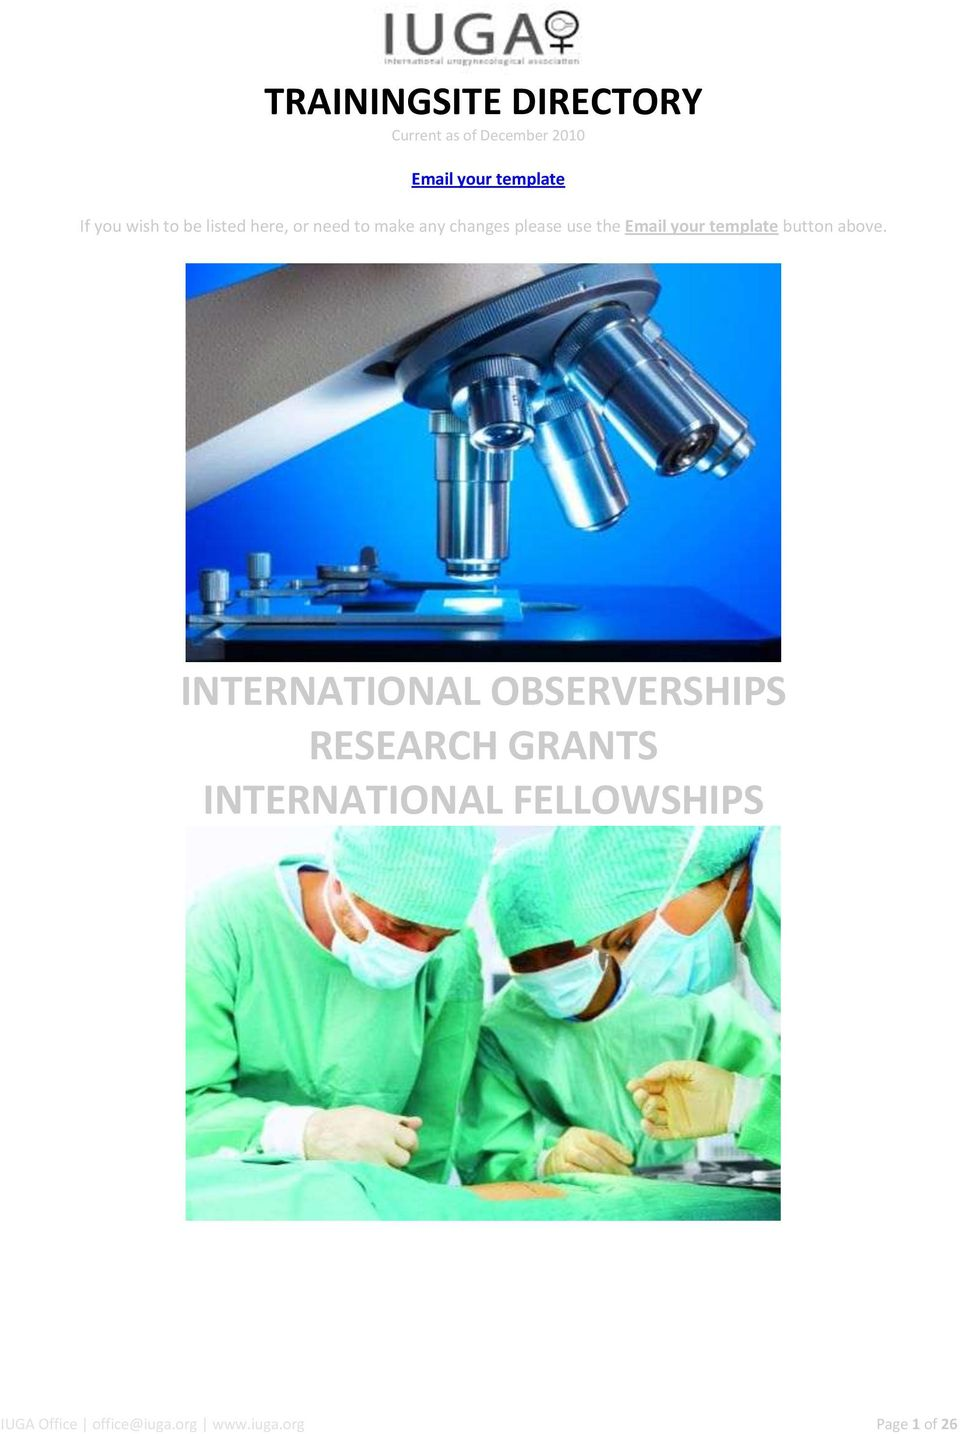 INTERNATIONAL OBSERVERSHIPS RESEARCH GRANTS INTERNATIONAL